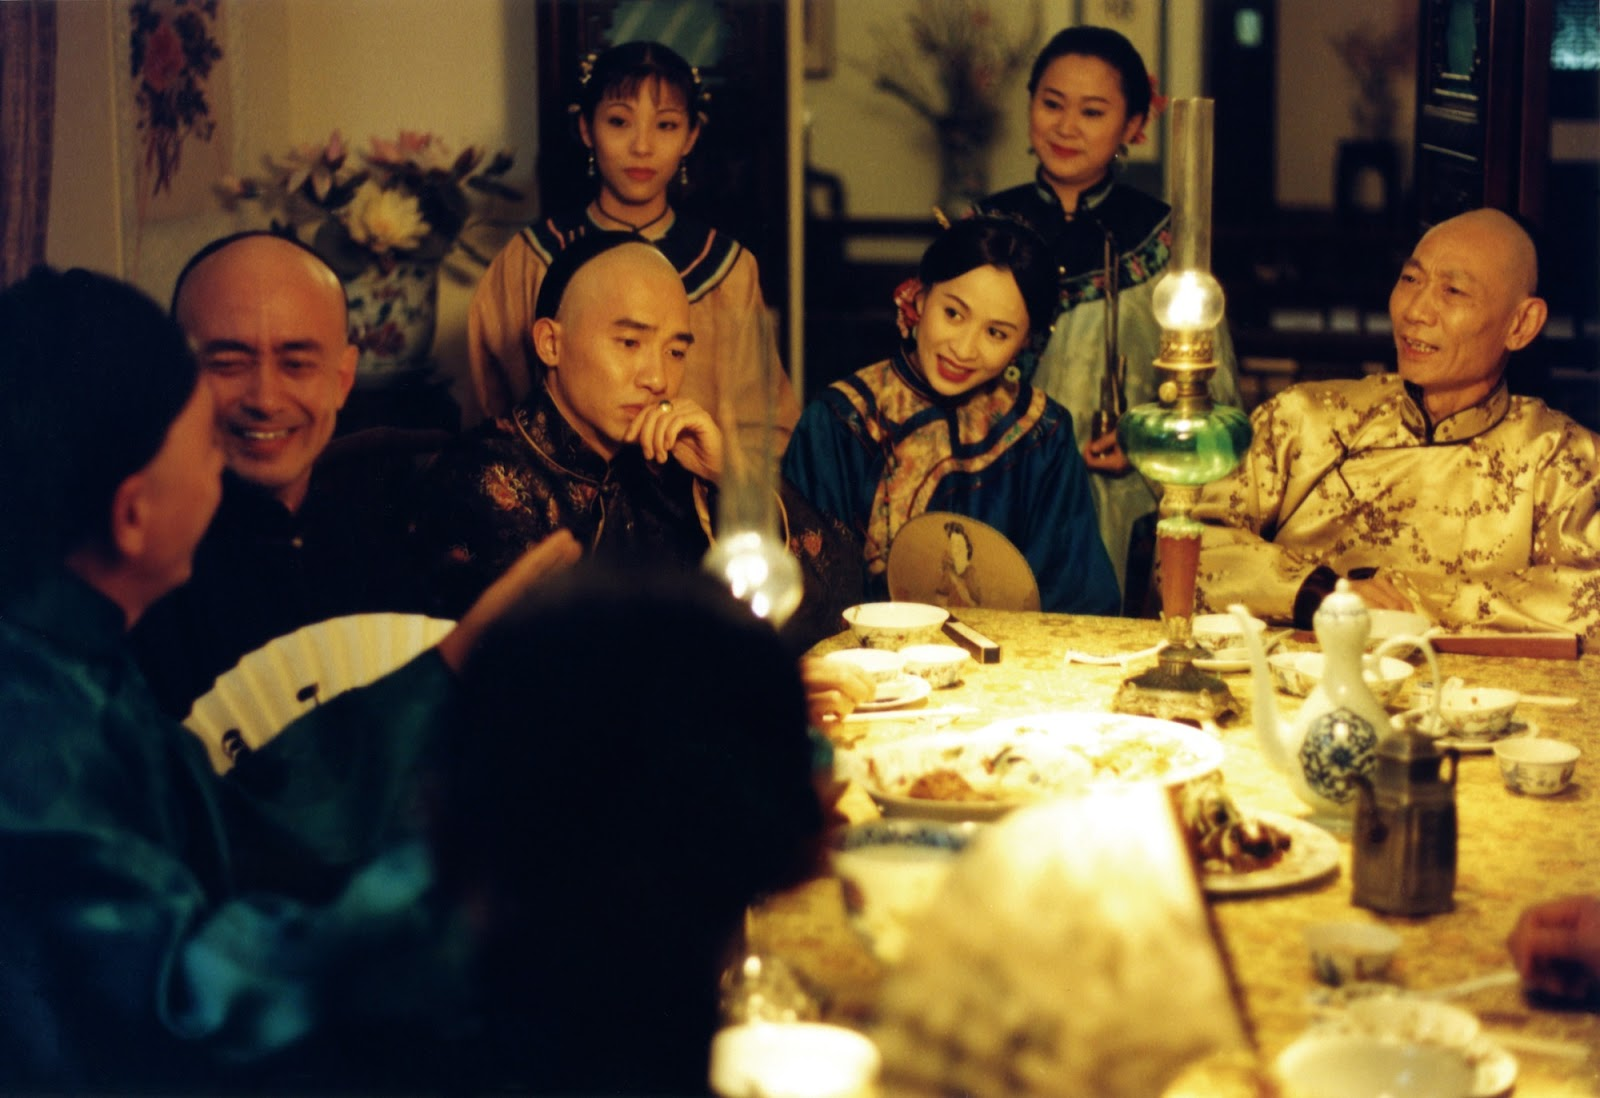 A still from the film Flowers of Shanghai, Around a table at a party, all guests appear to be smiling except one man